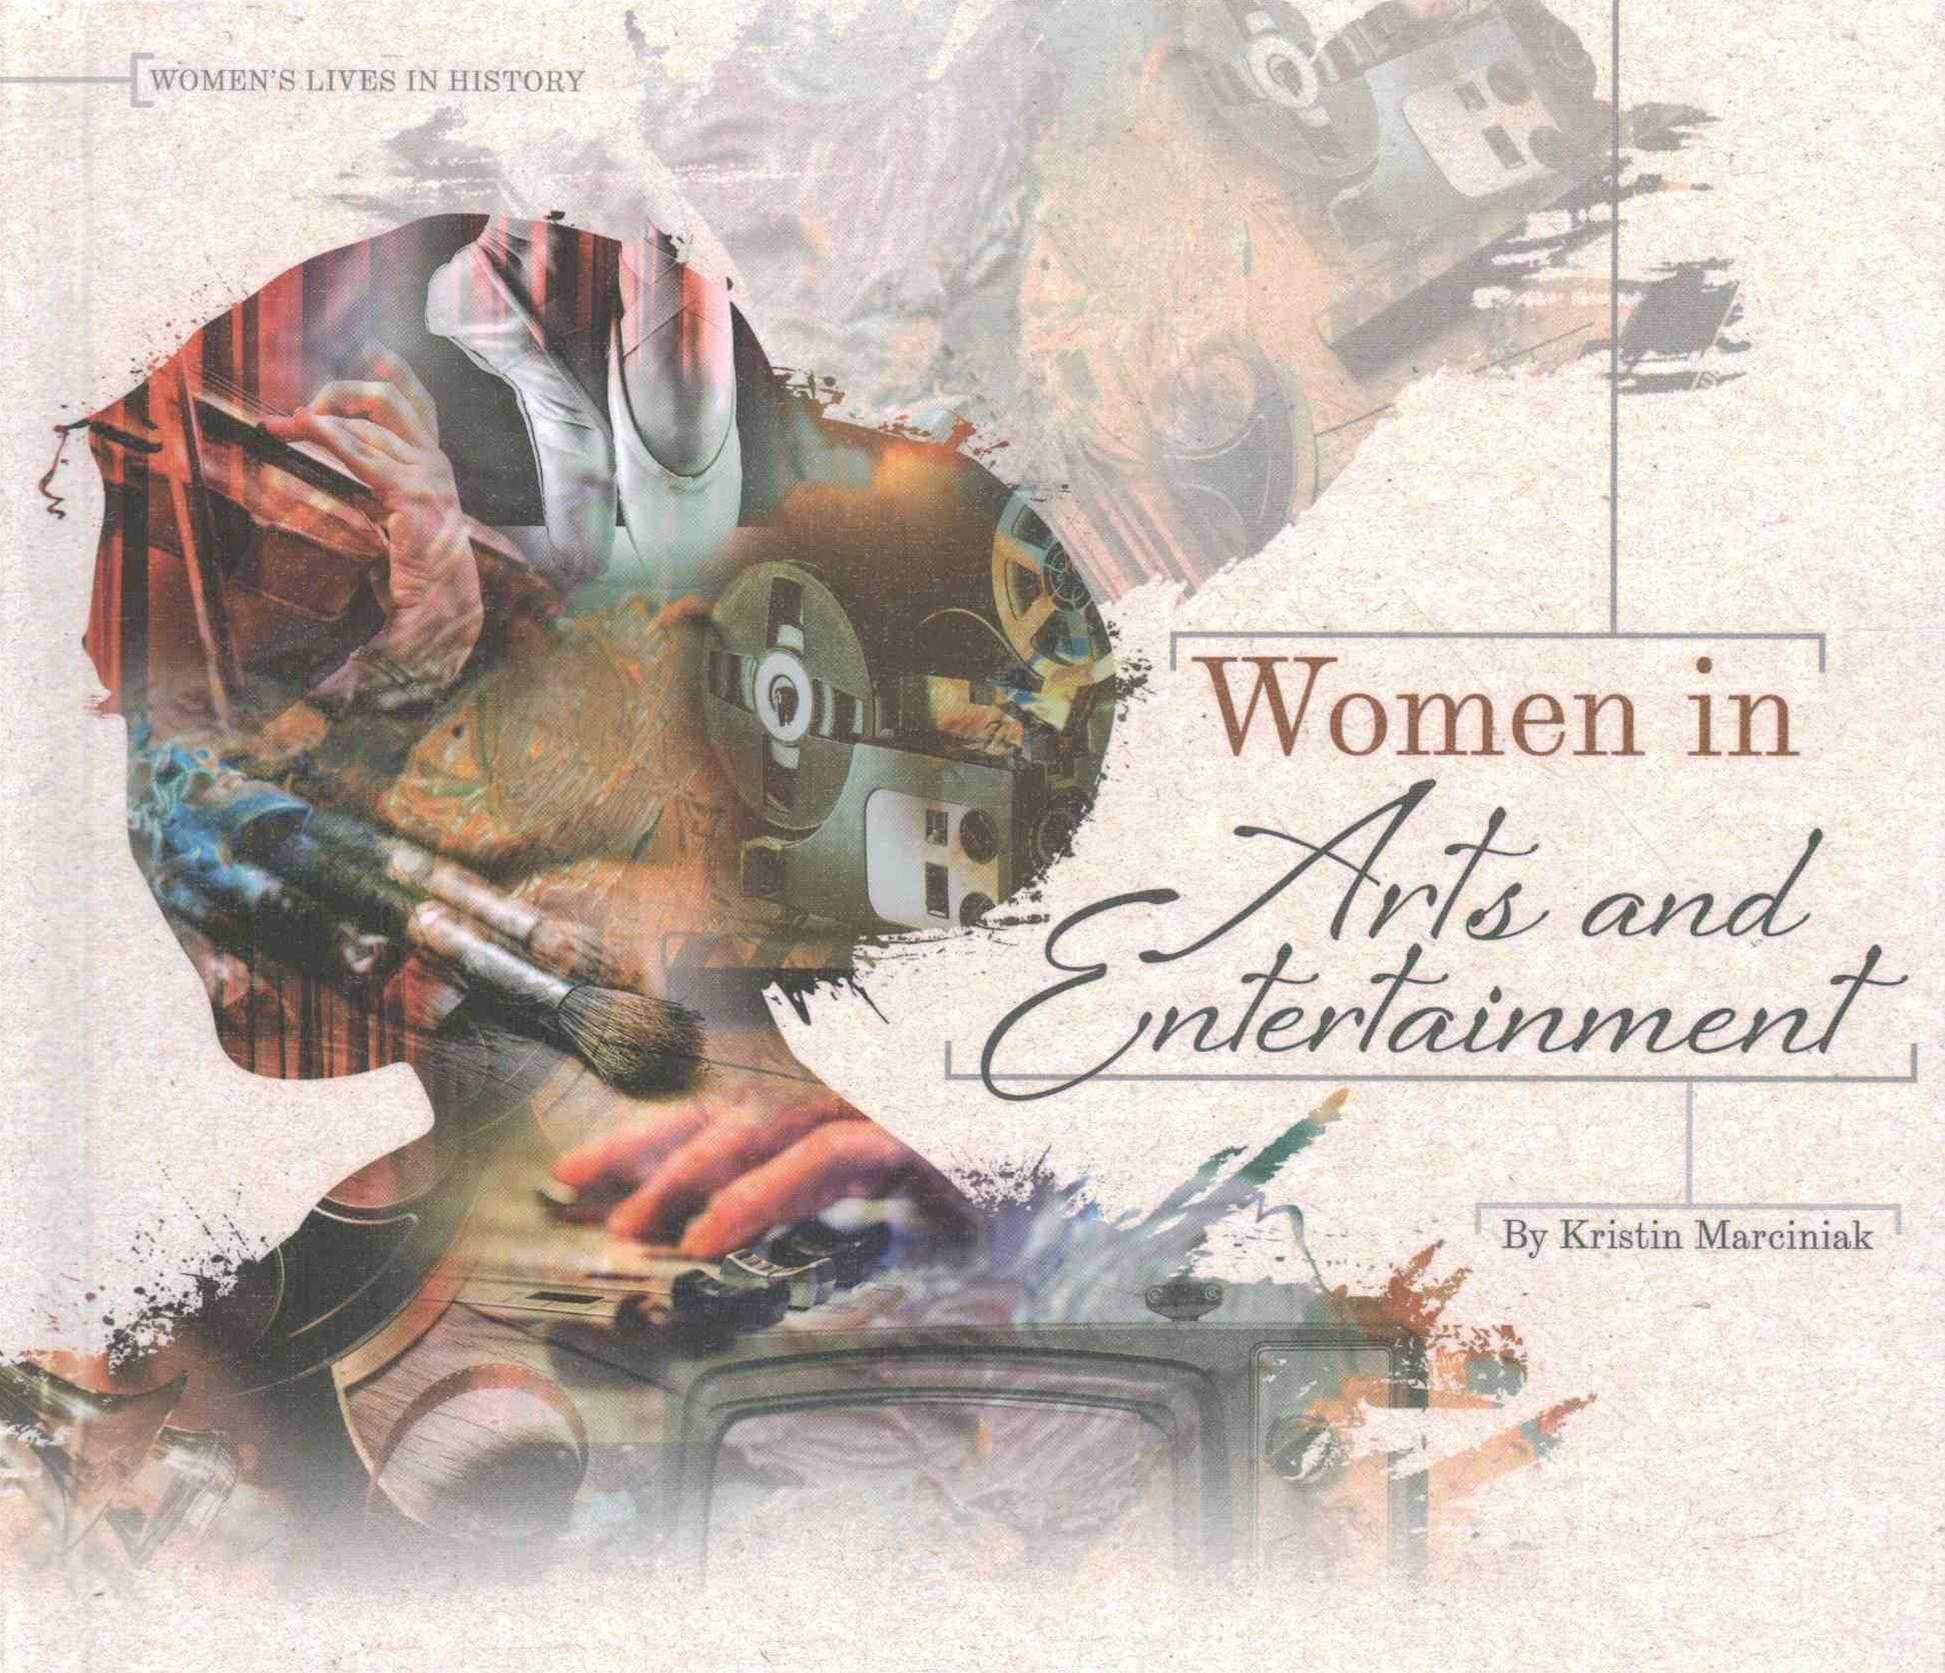 Women in Arts and Entertainment